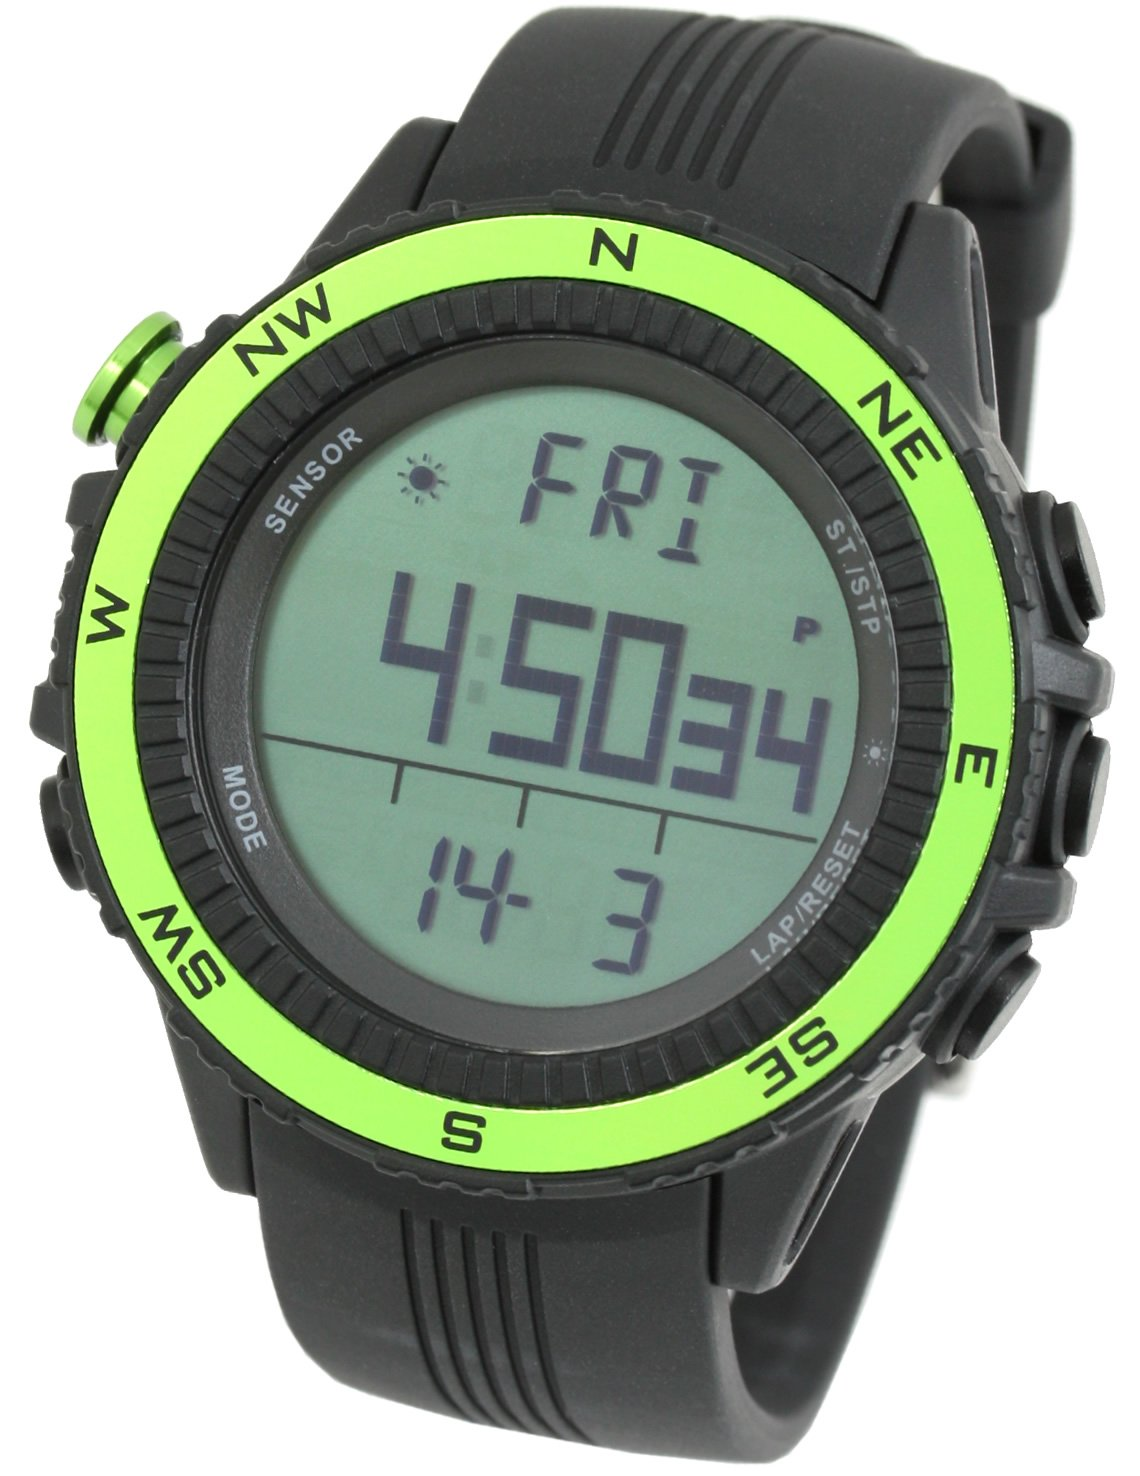 watches men digital clock north watch altitude edge index outdoor peak